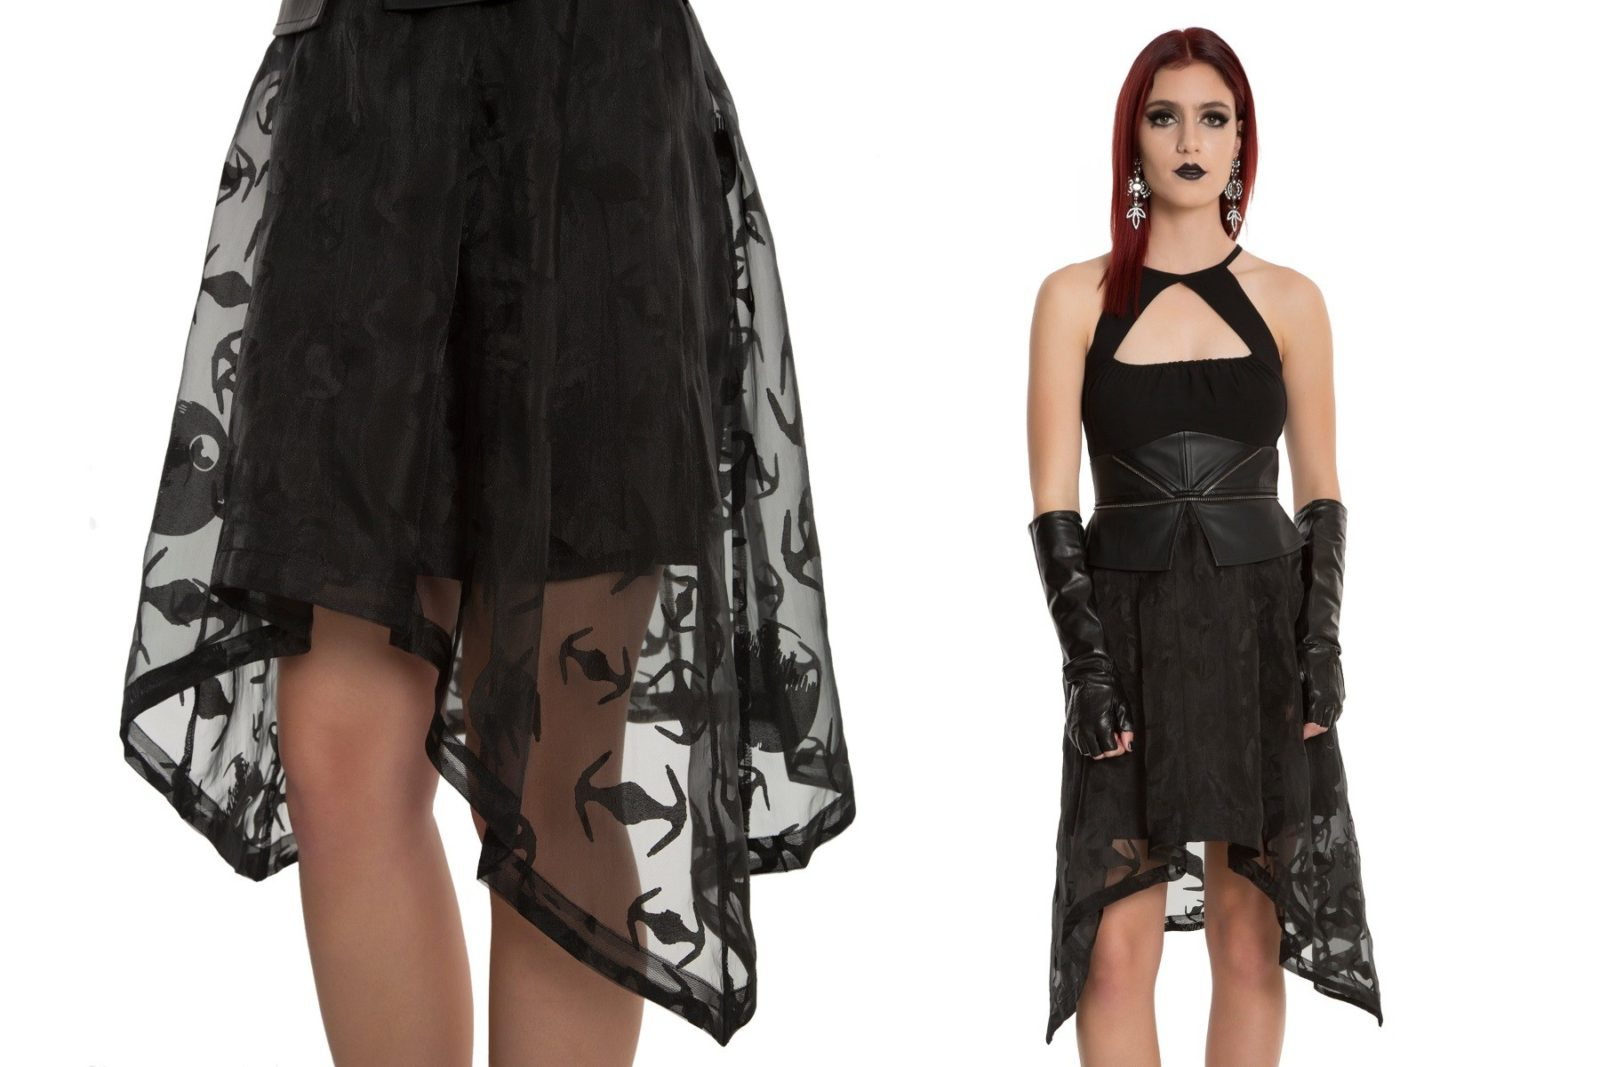 New Darth Vader dress at Hot Topic!